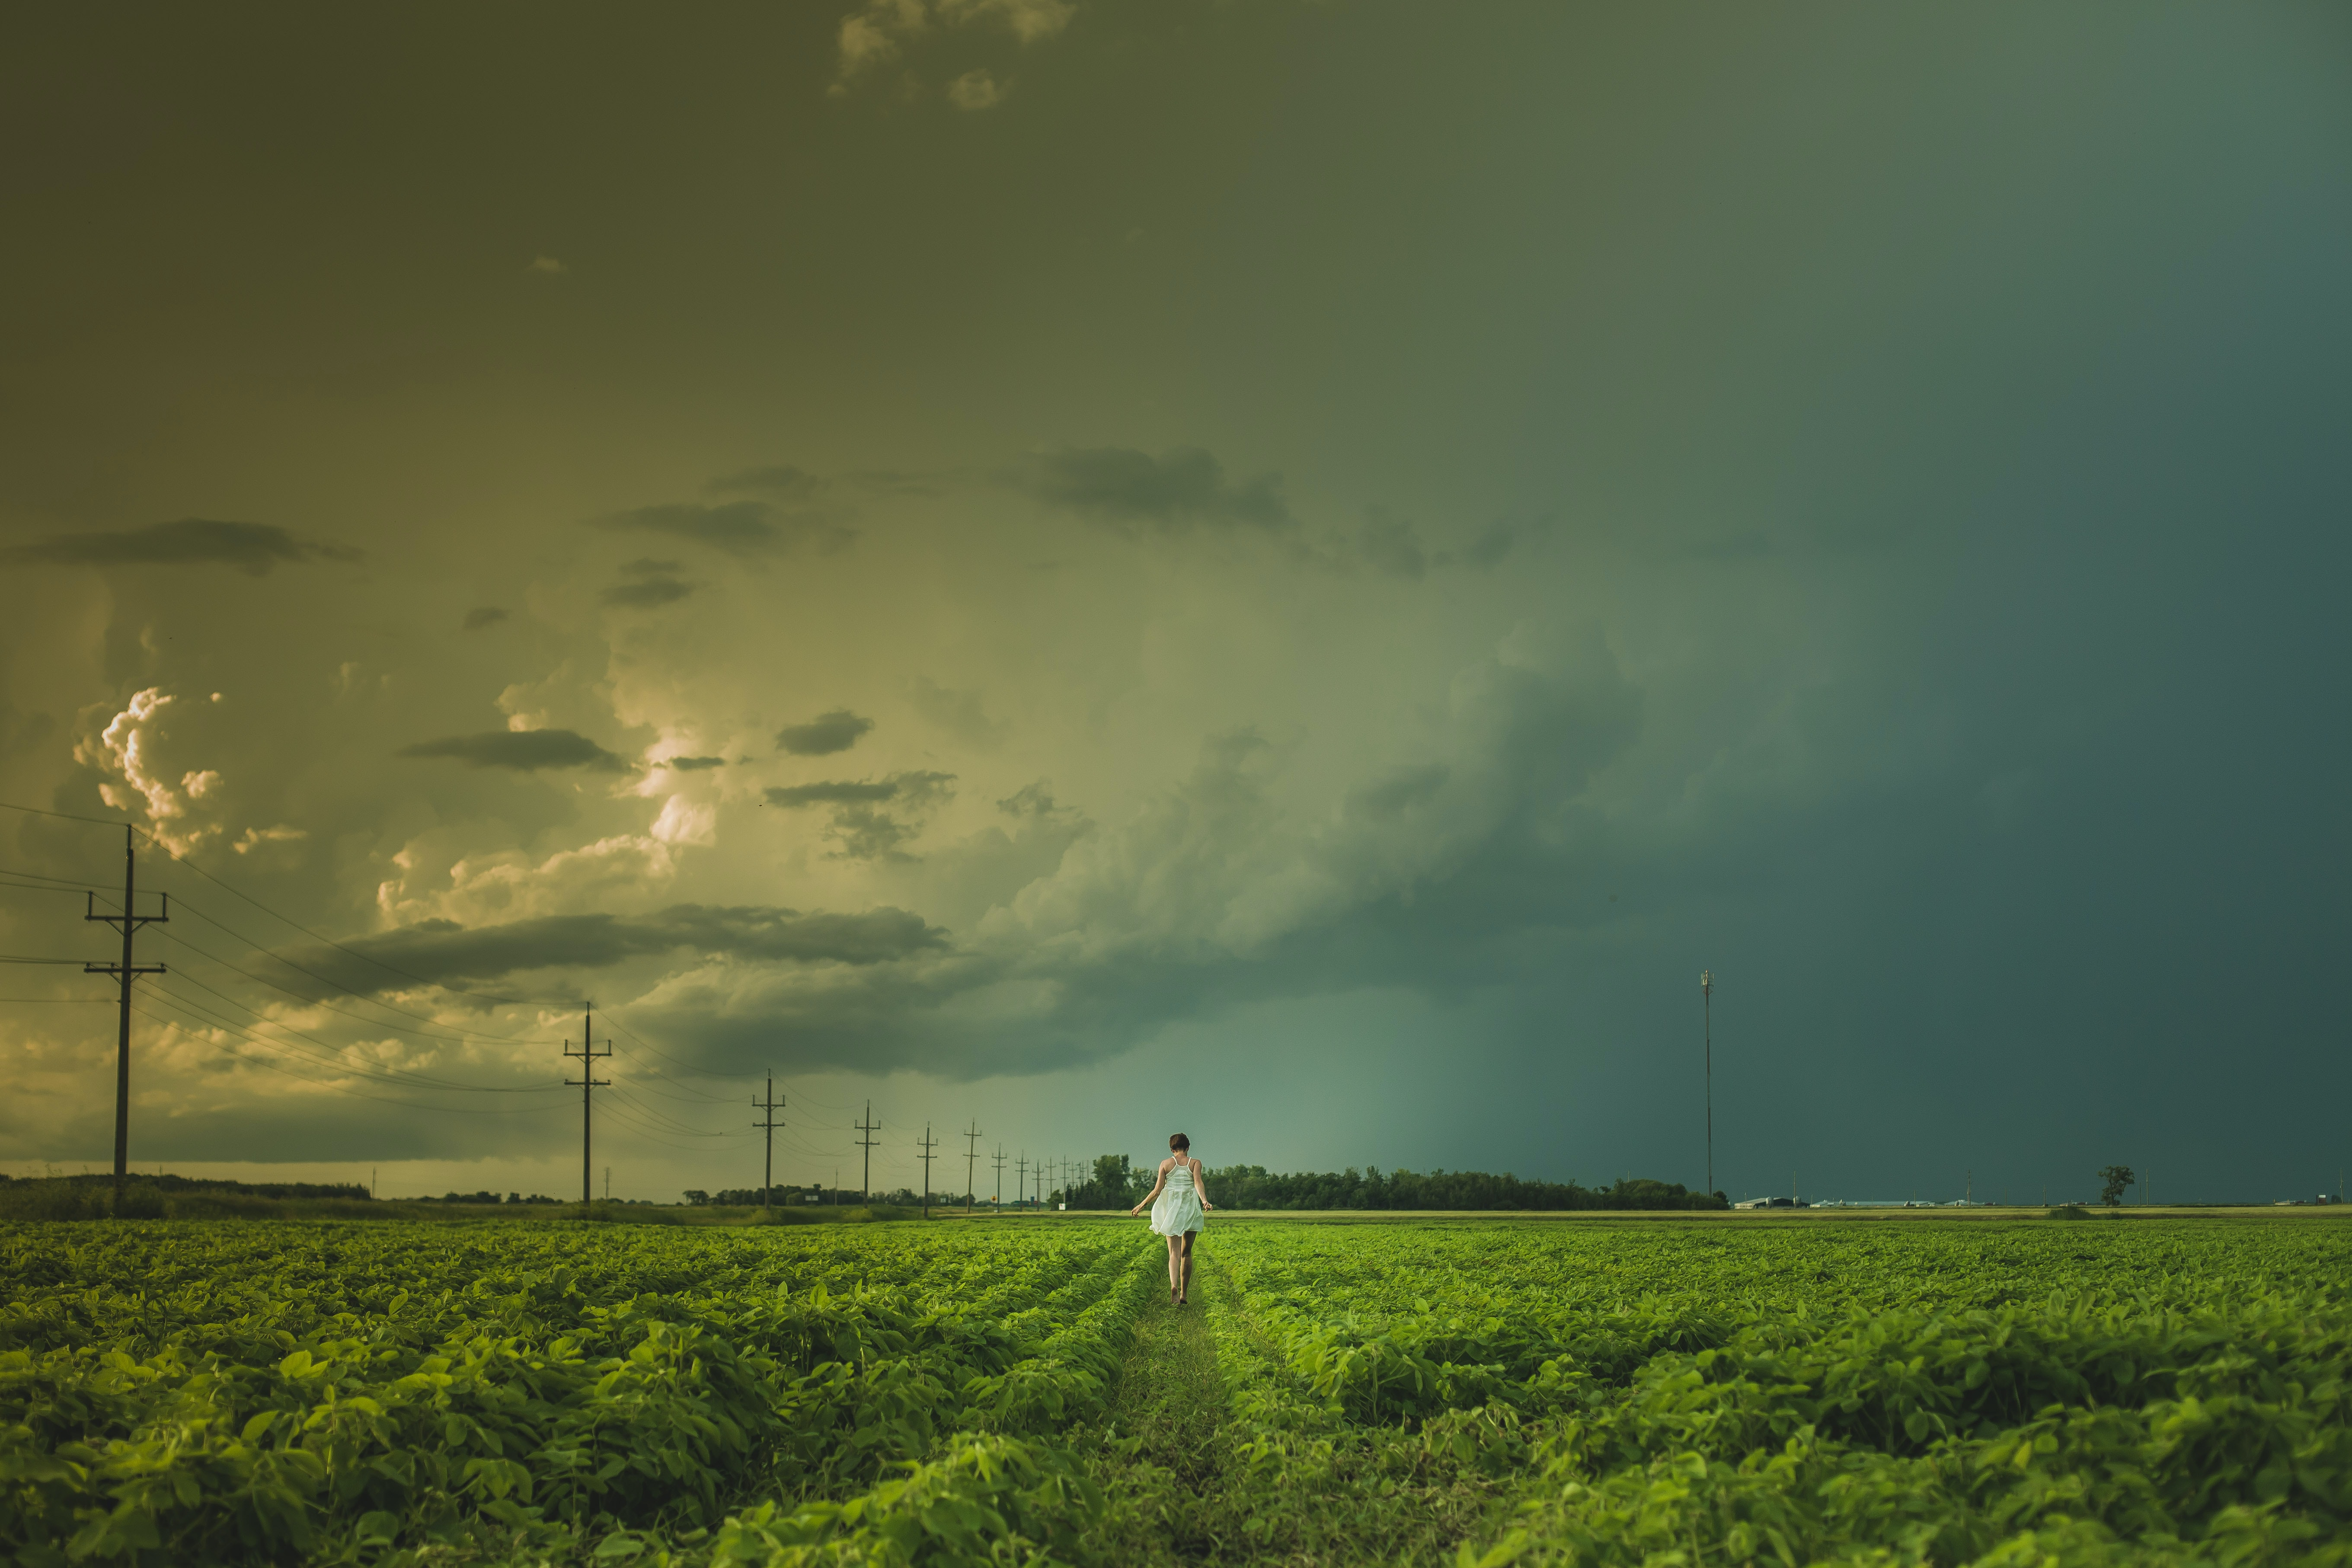 person walking near electric post under cloudy sky